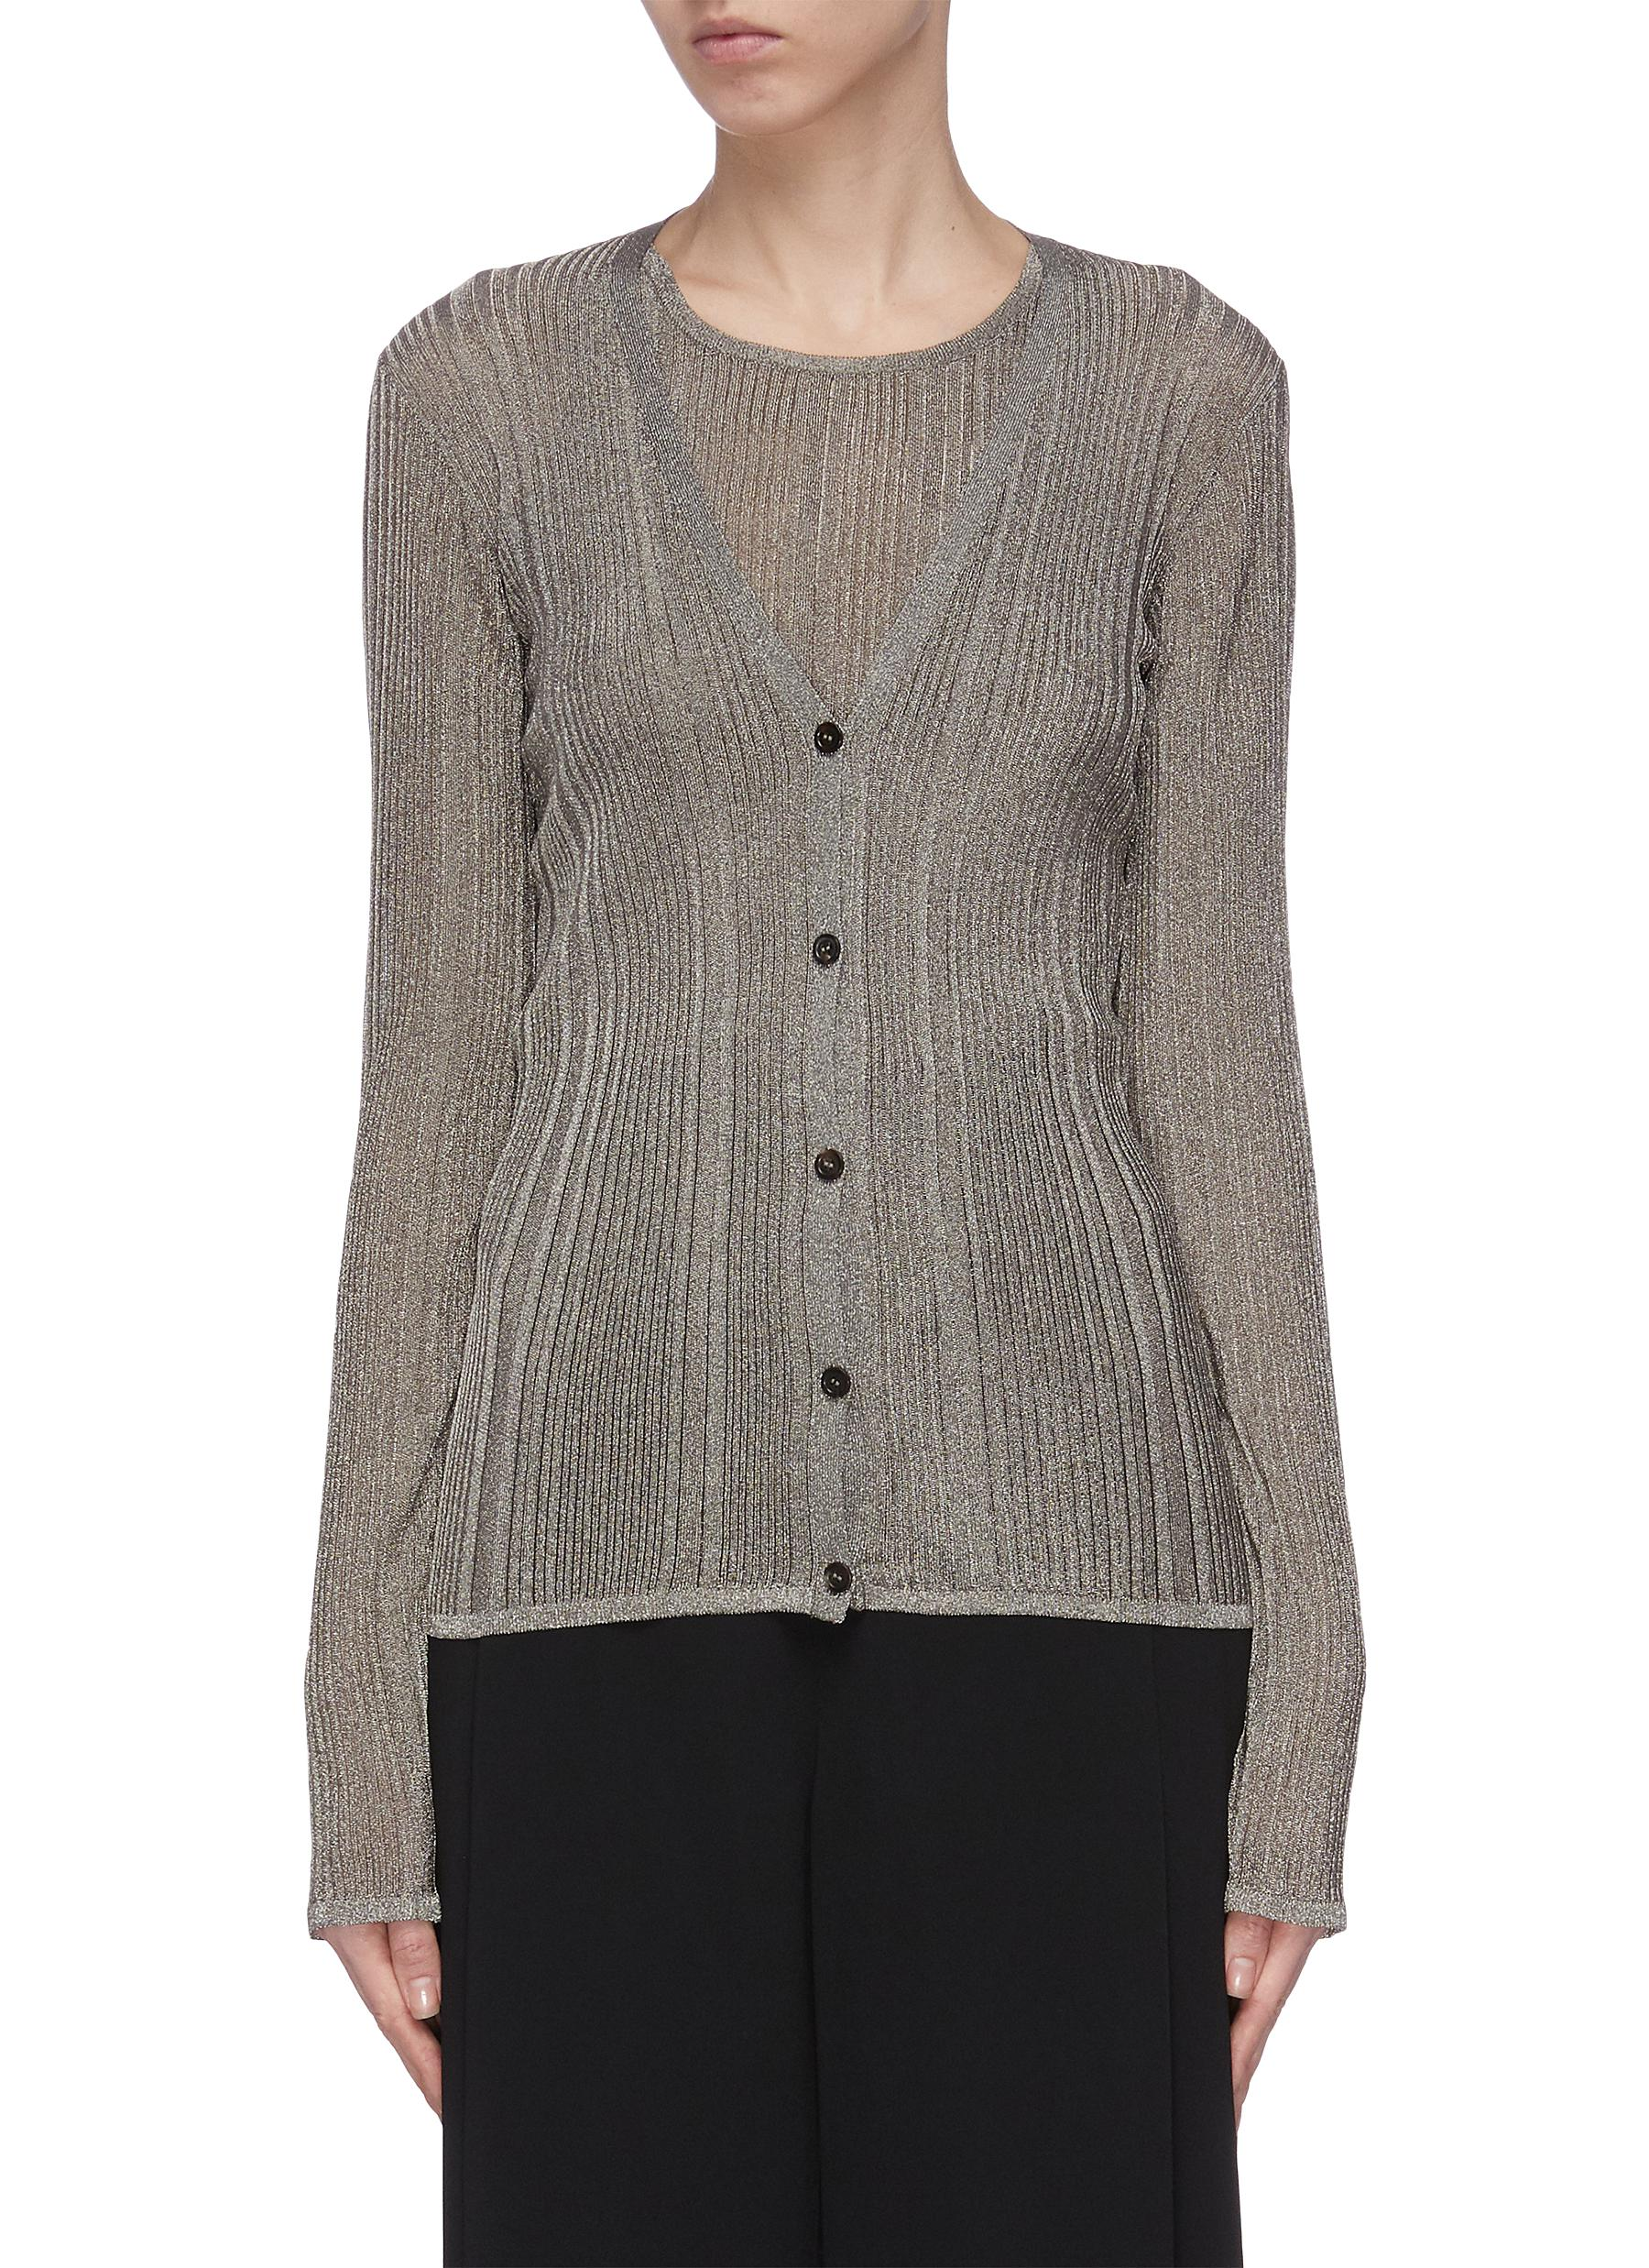 shop The Row 'Obasi' sheer metallic rib knit cardigan online